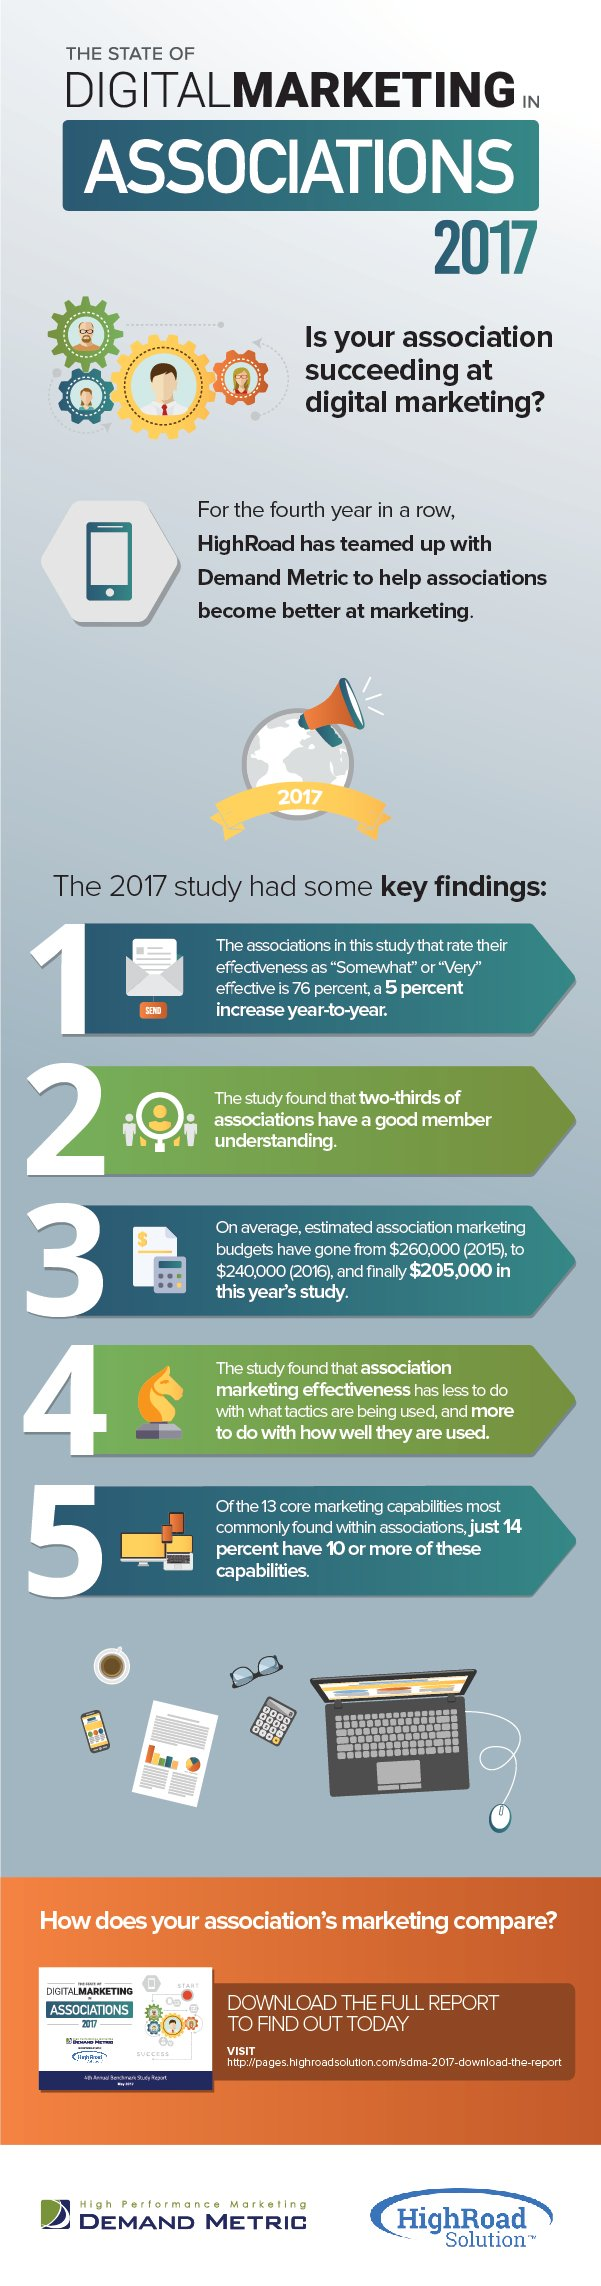 The 2017 State Of Digital Marketing In Associations Report:  5 Key Findings